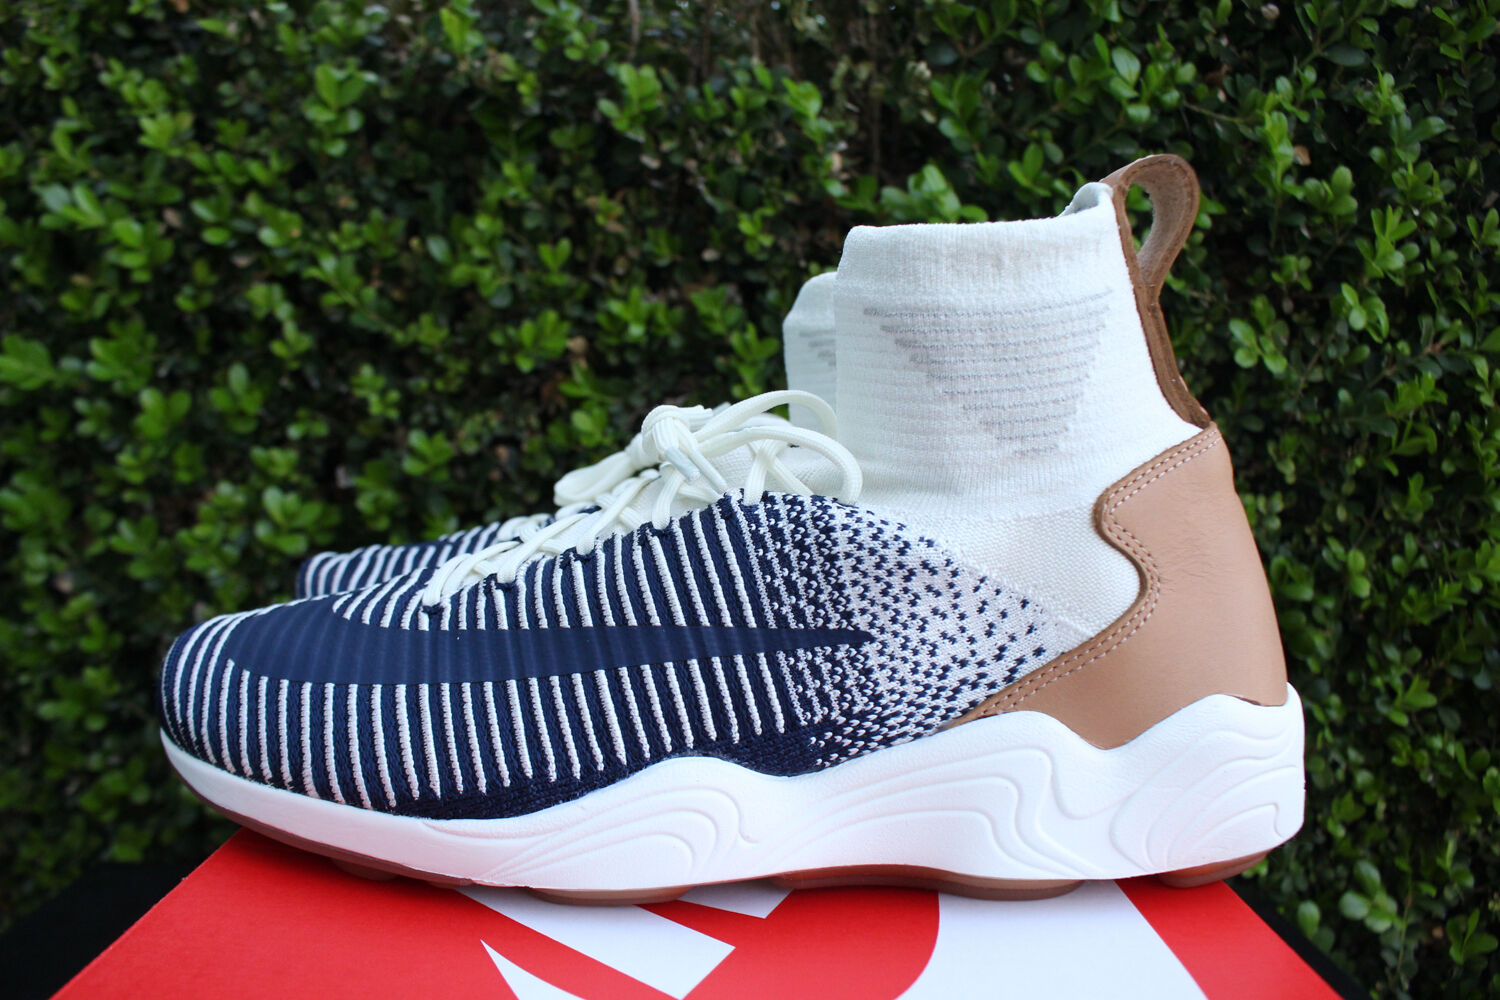 NIKE ZOOM MERCURIAL XI FLYKNIT SZ 10 FK SAIL CREAM NAVY PALE GREY 844626 101